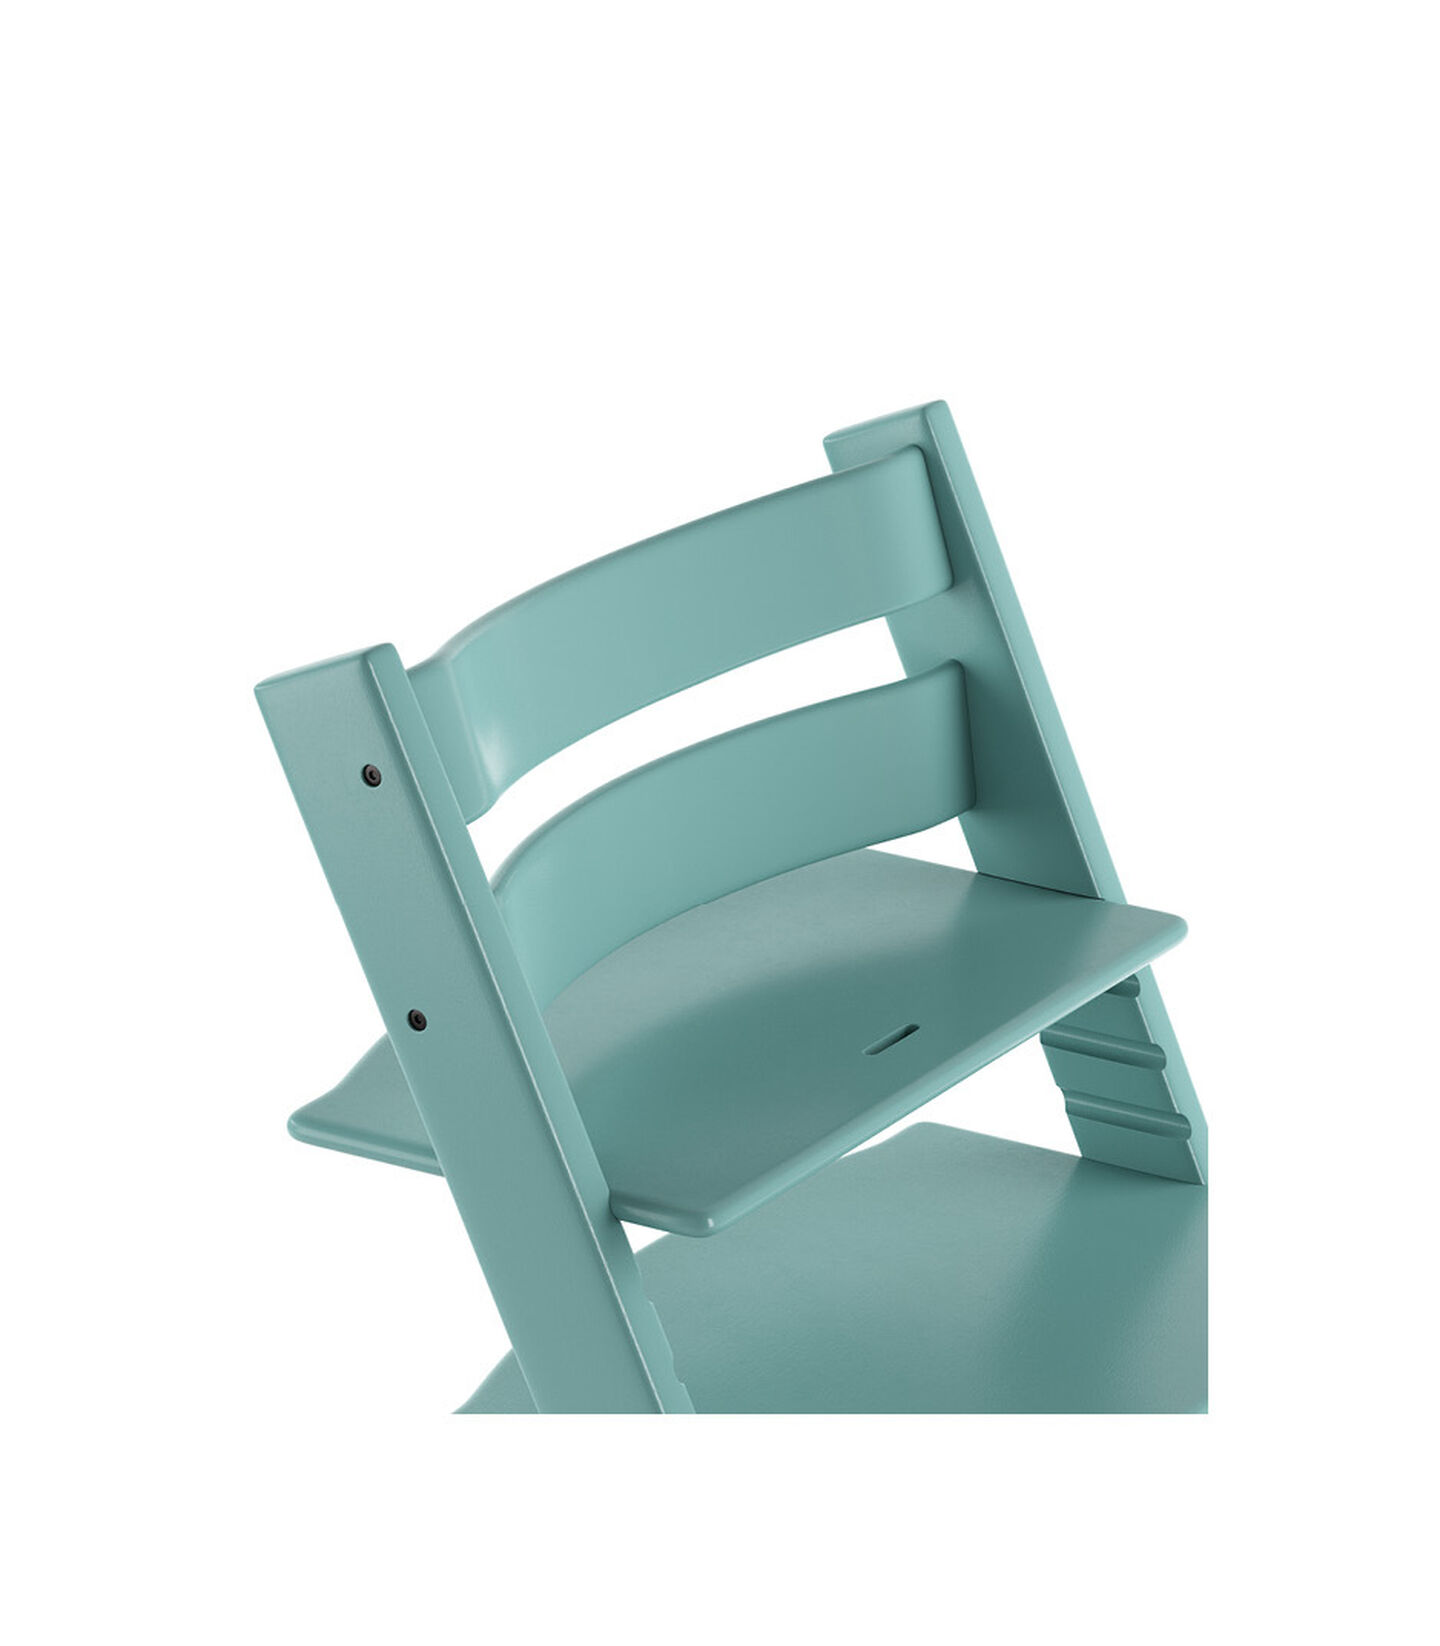 Tripp Trapp® Chair close up 3D rendering Aqua Blue